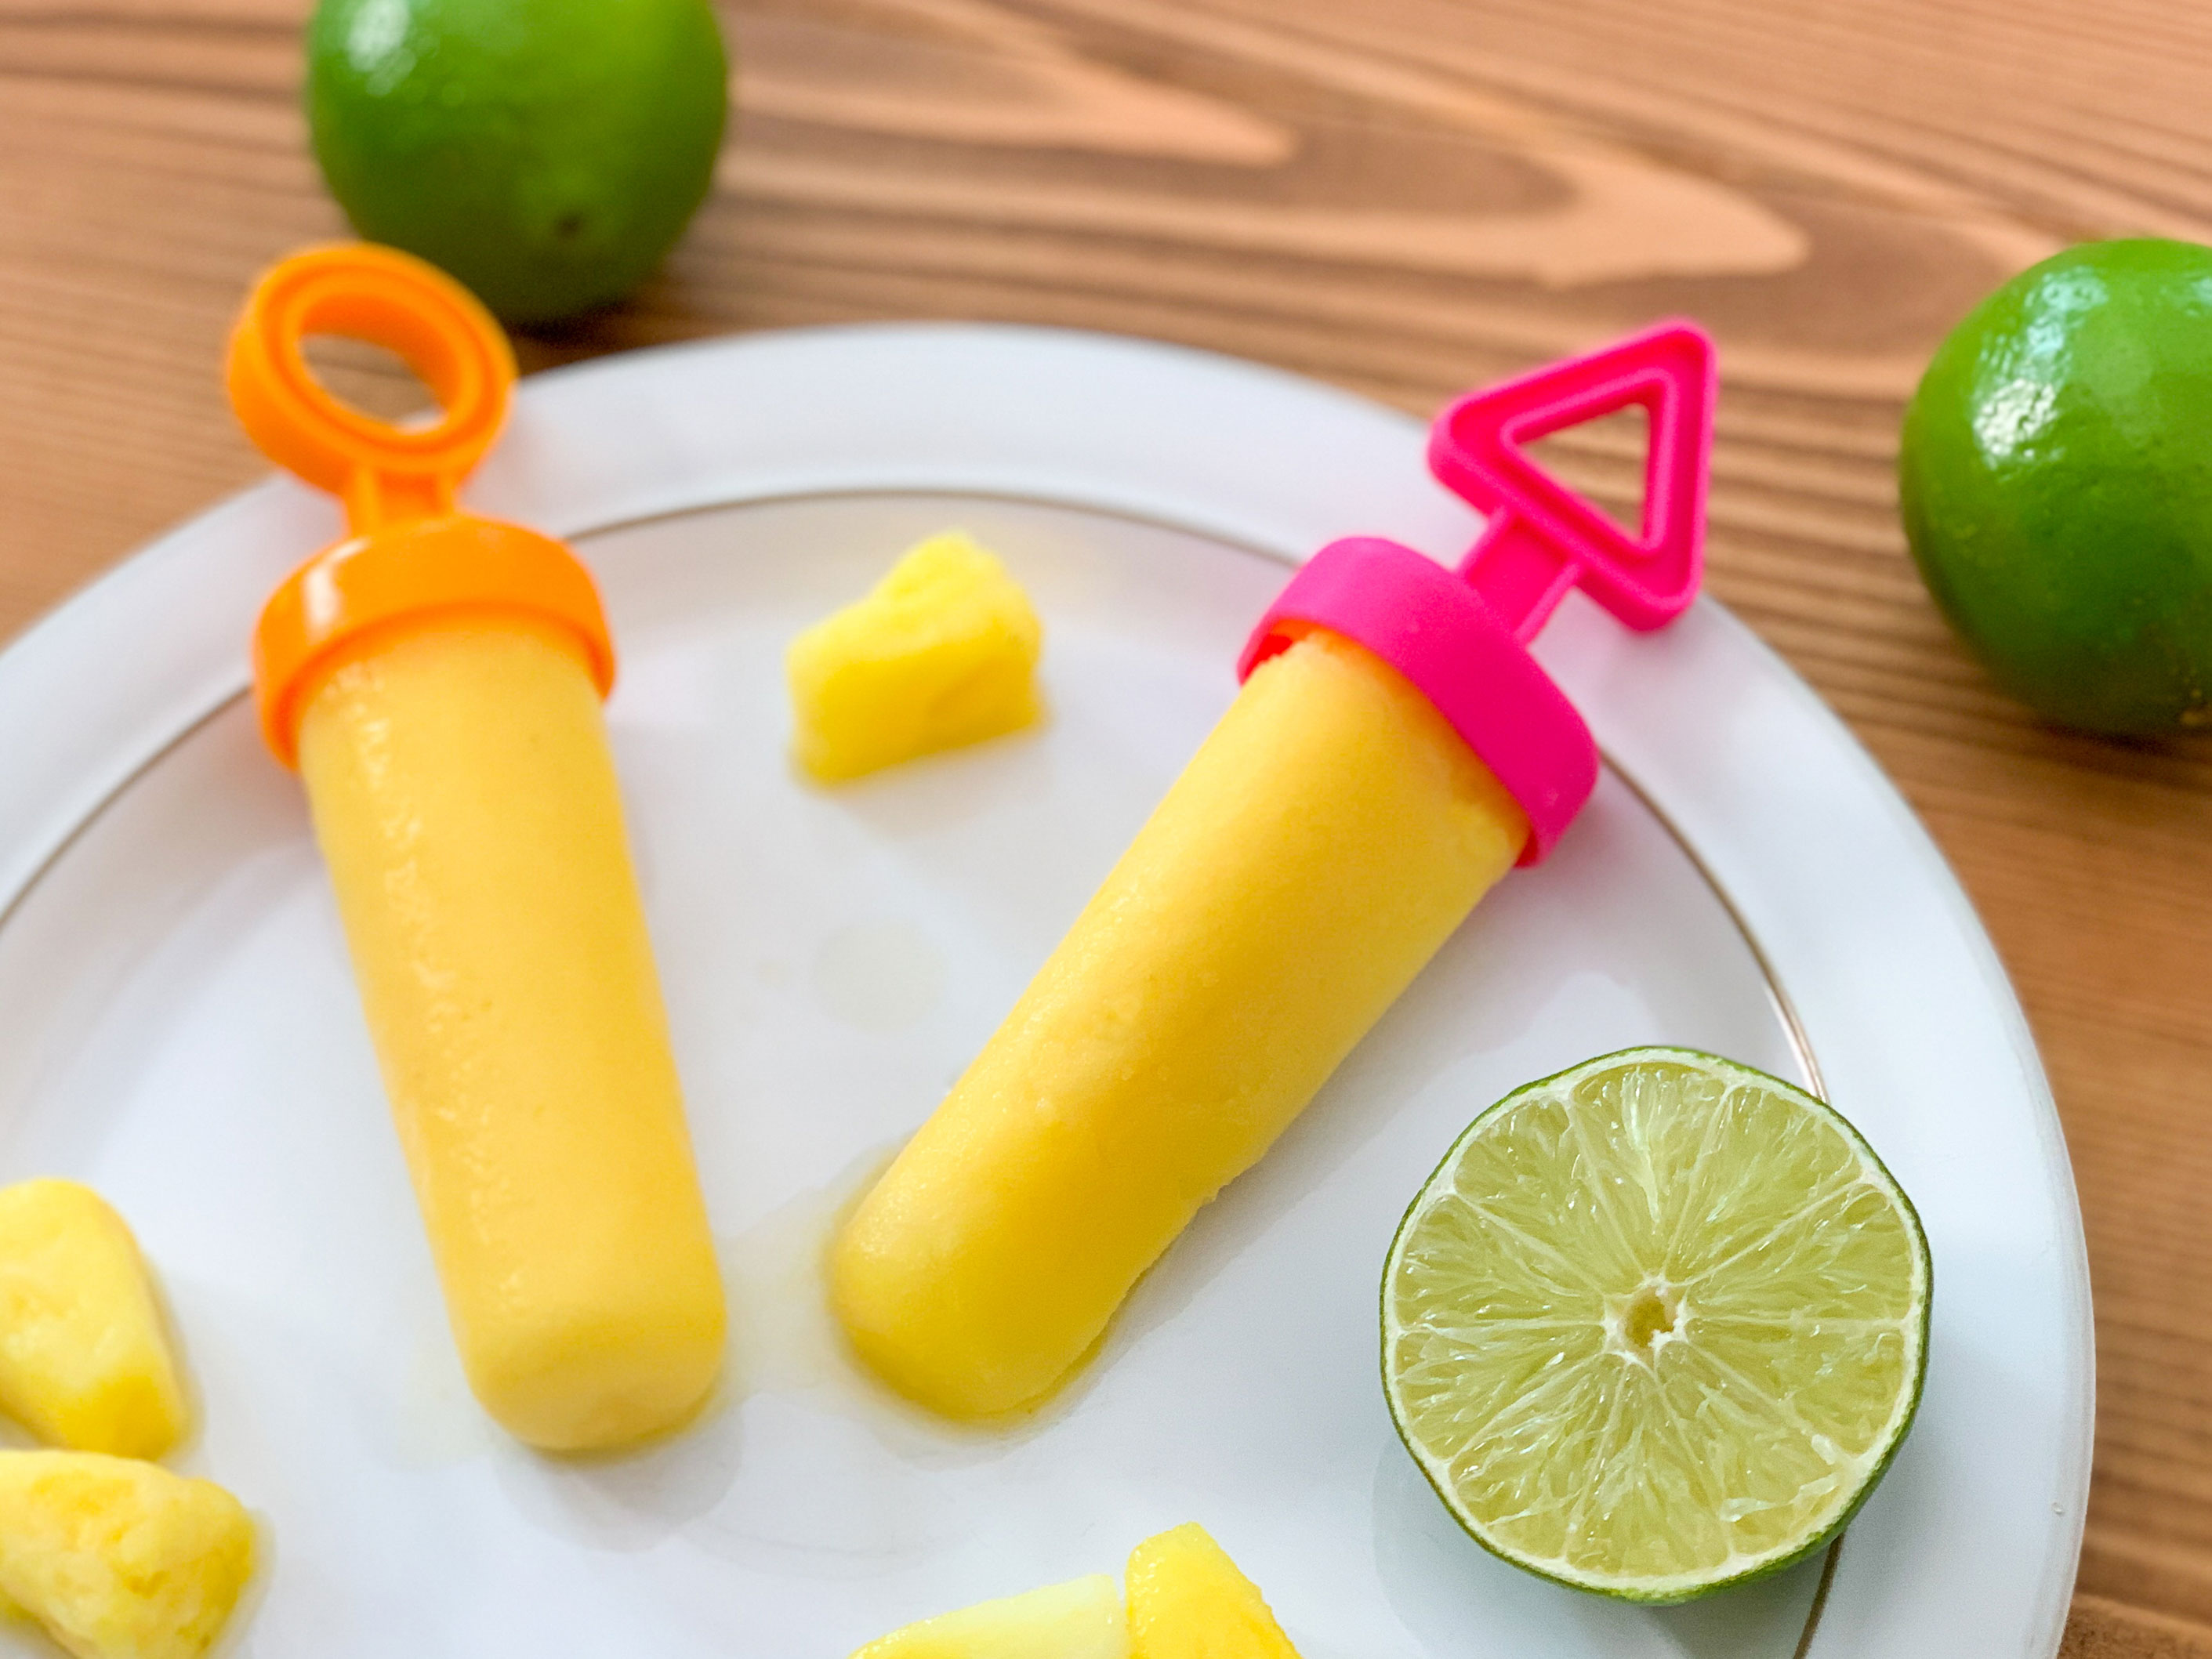 two frozen popsicles on a plate next to limes and pineapple pieces